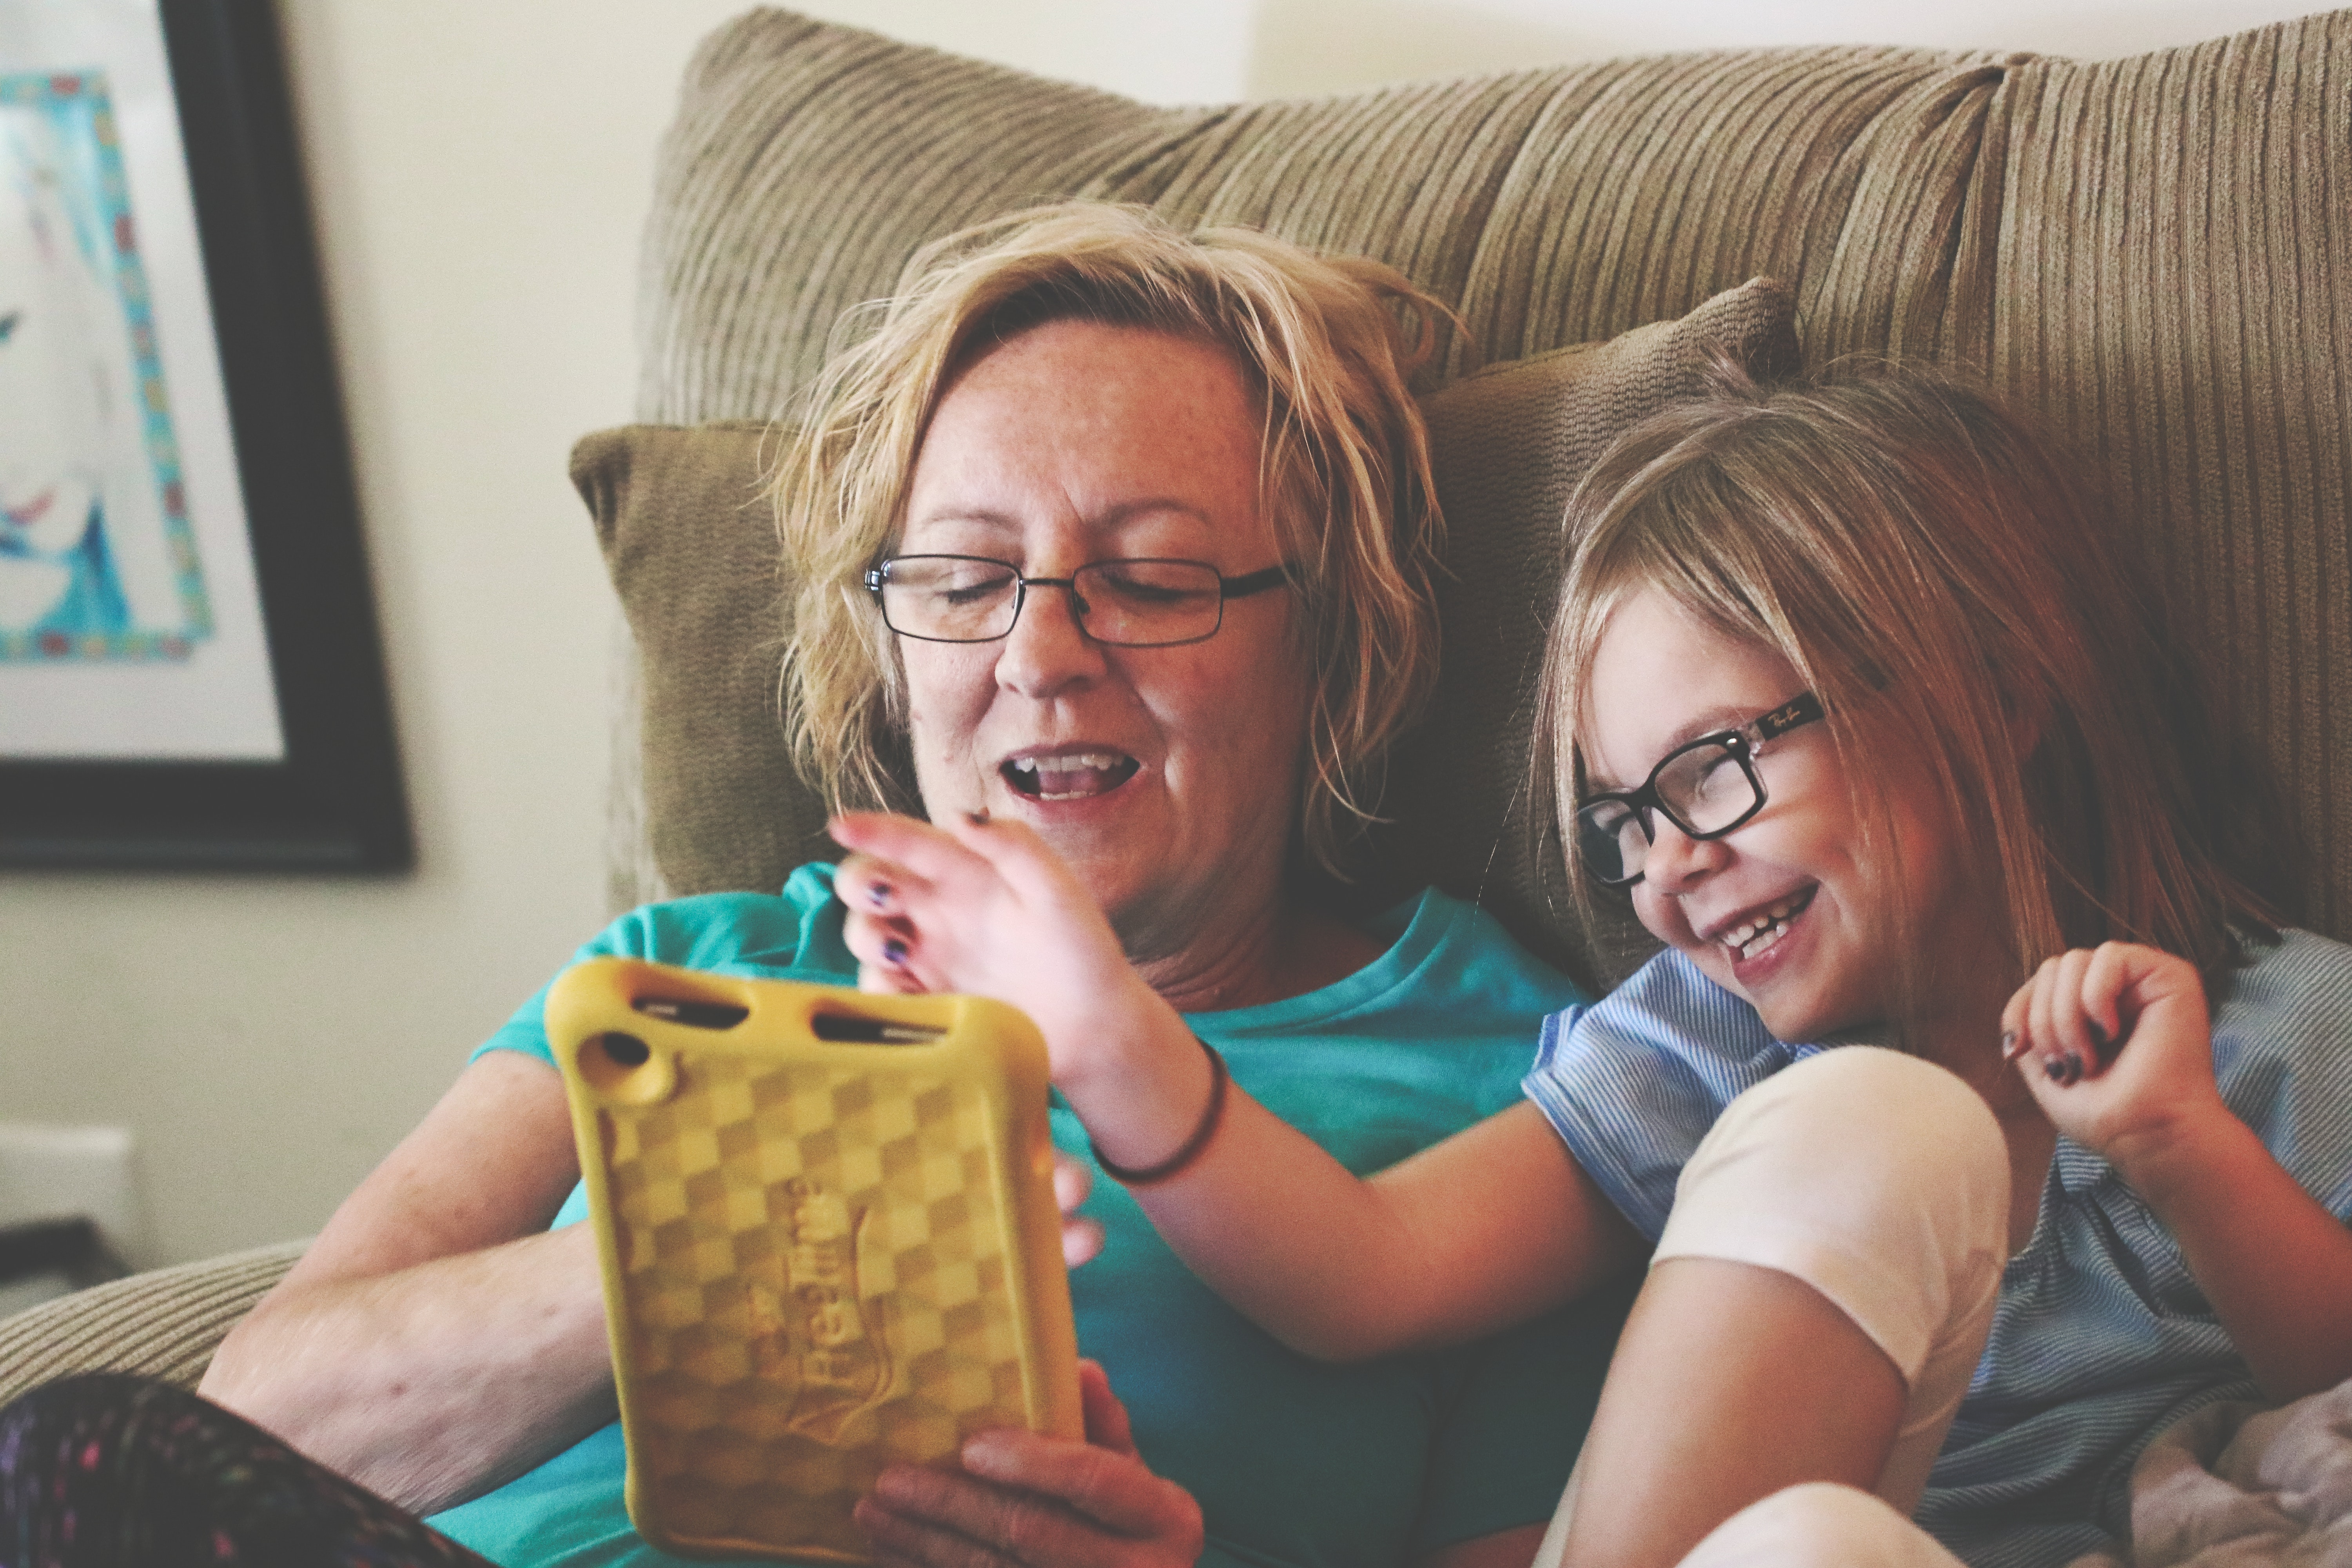 Image of a woman with a child using a tablet - using demographics rather than life stage in our customer persona may stereotype the woman